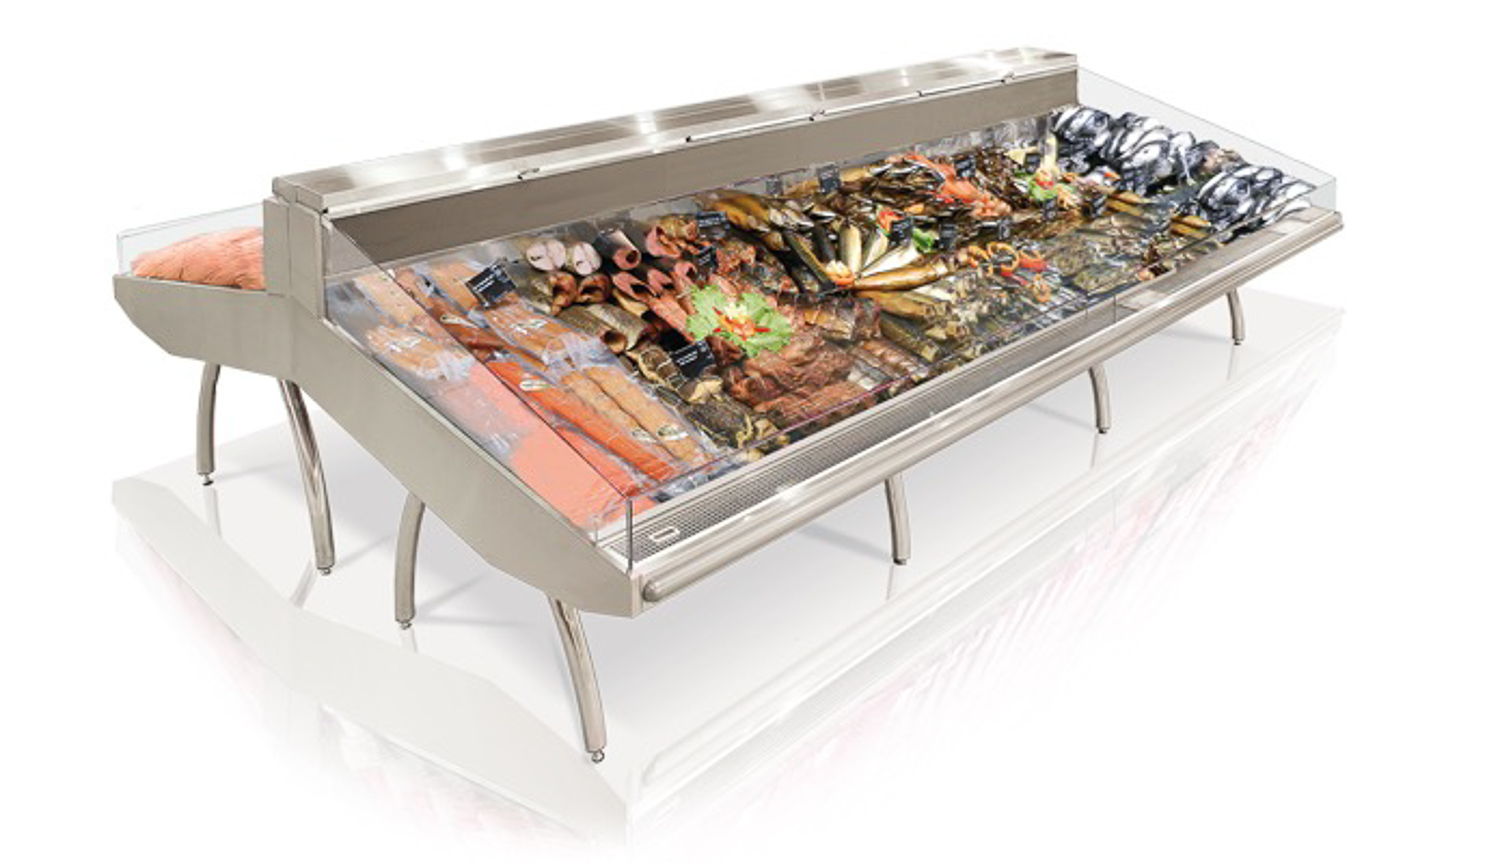 jbg-2-remote-counter-ldh-04-for-fishes.jpg